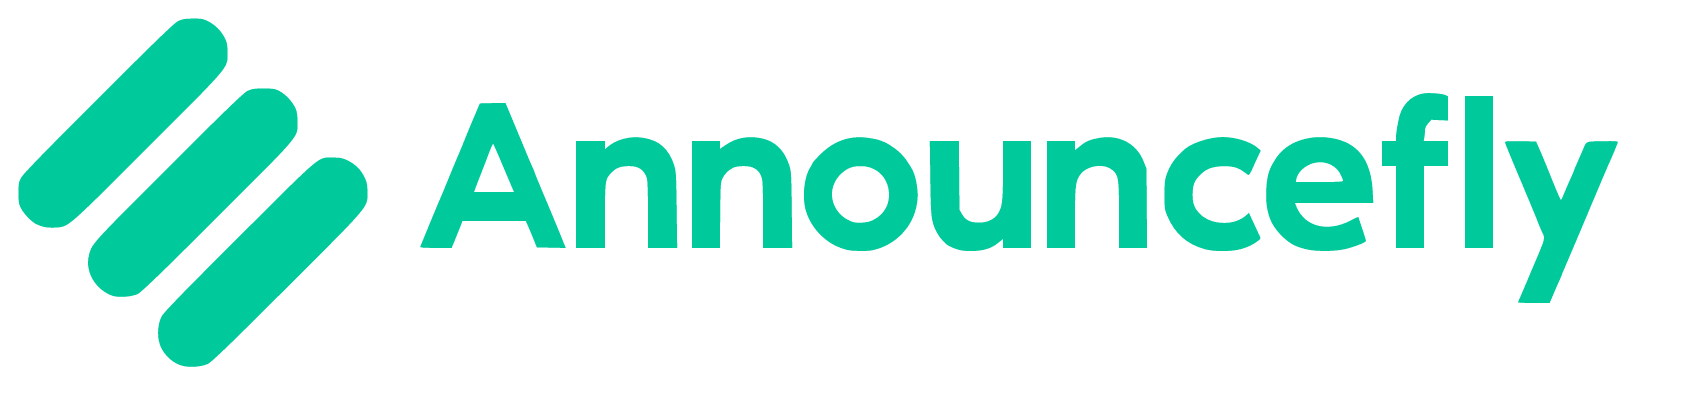 Announcefly Coupon & Startup Discount